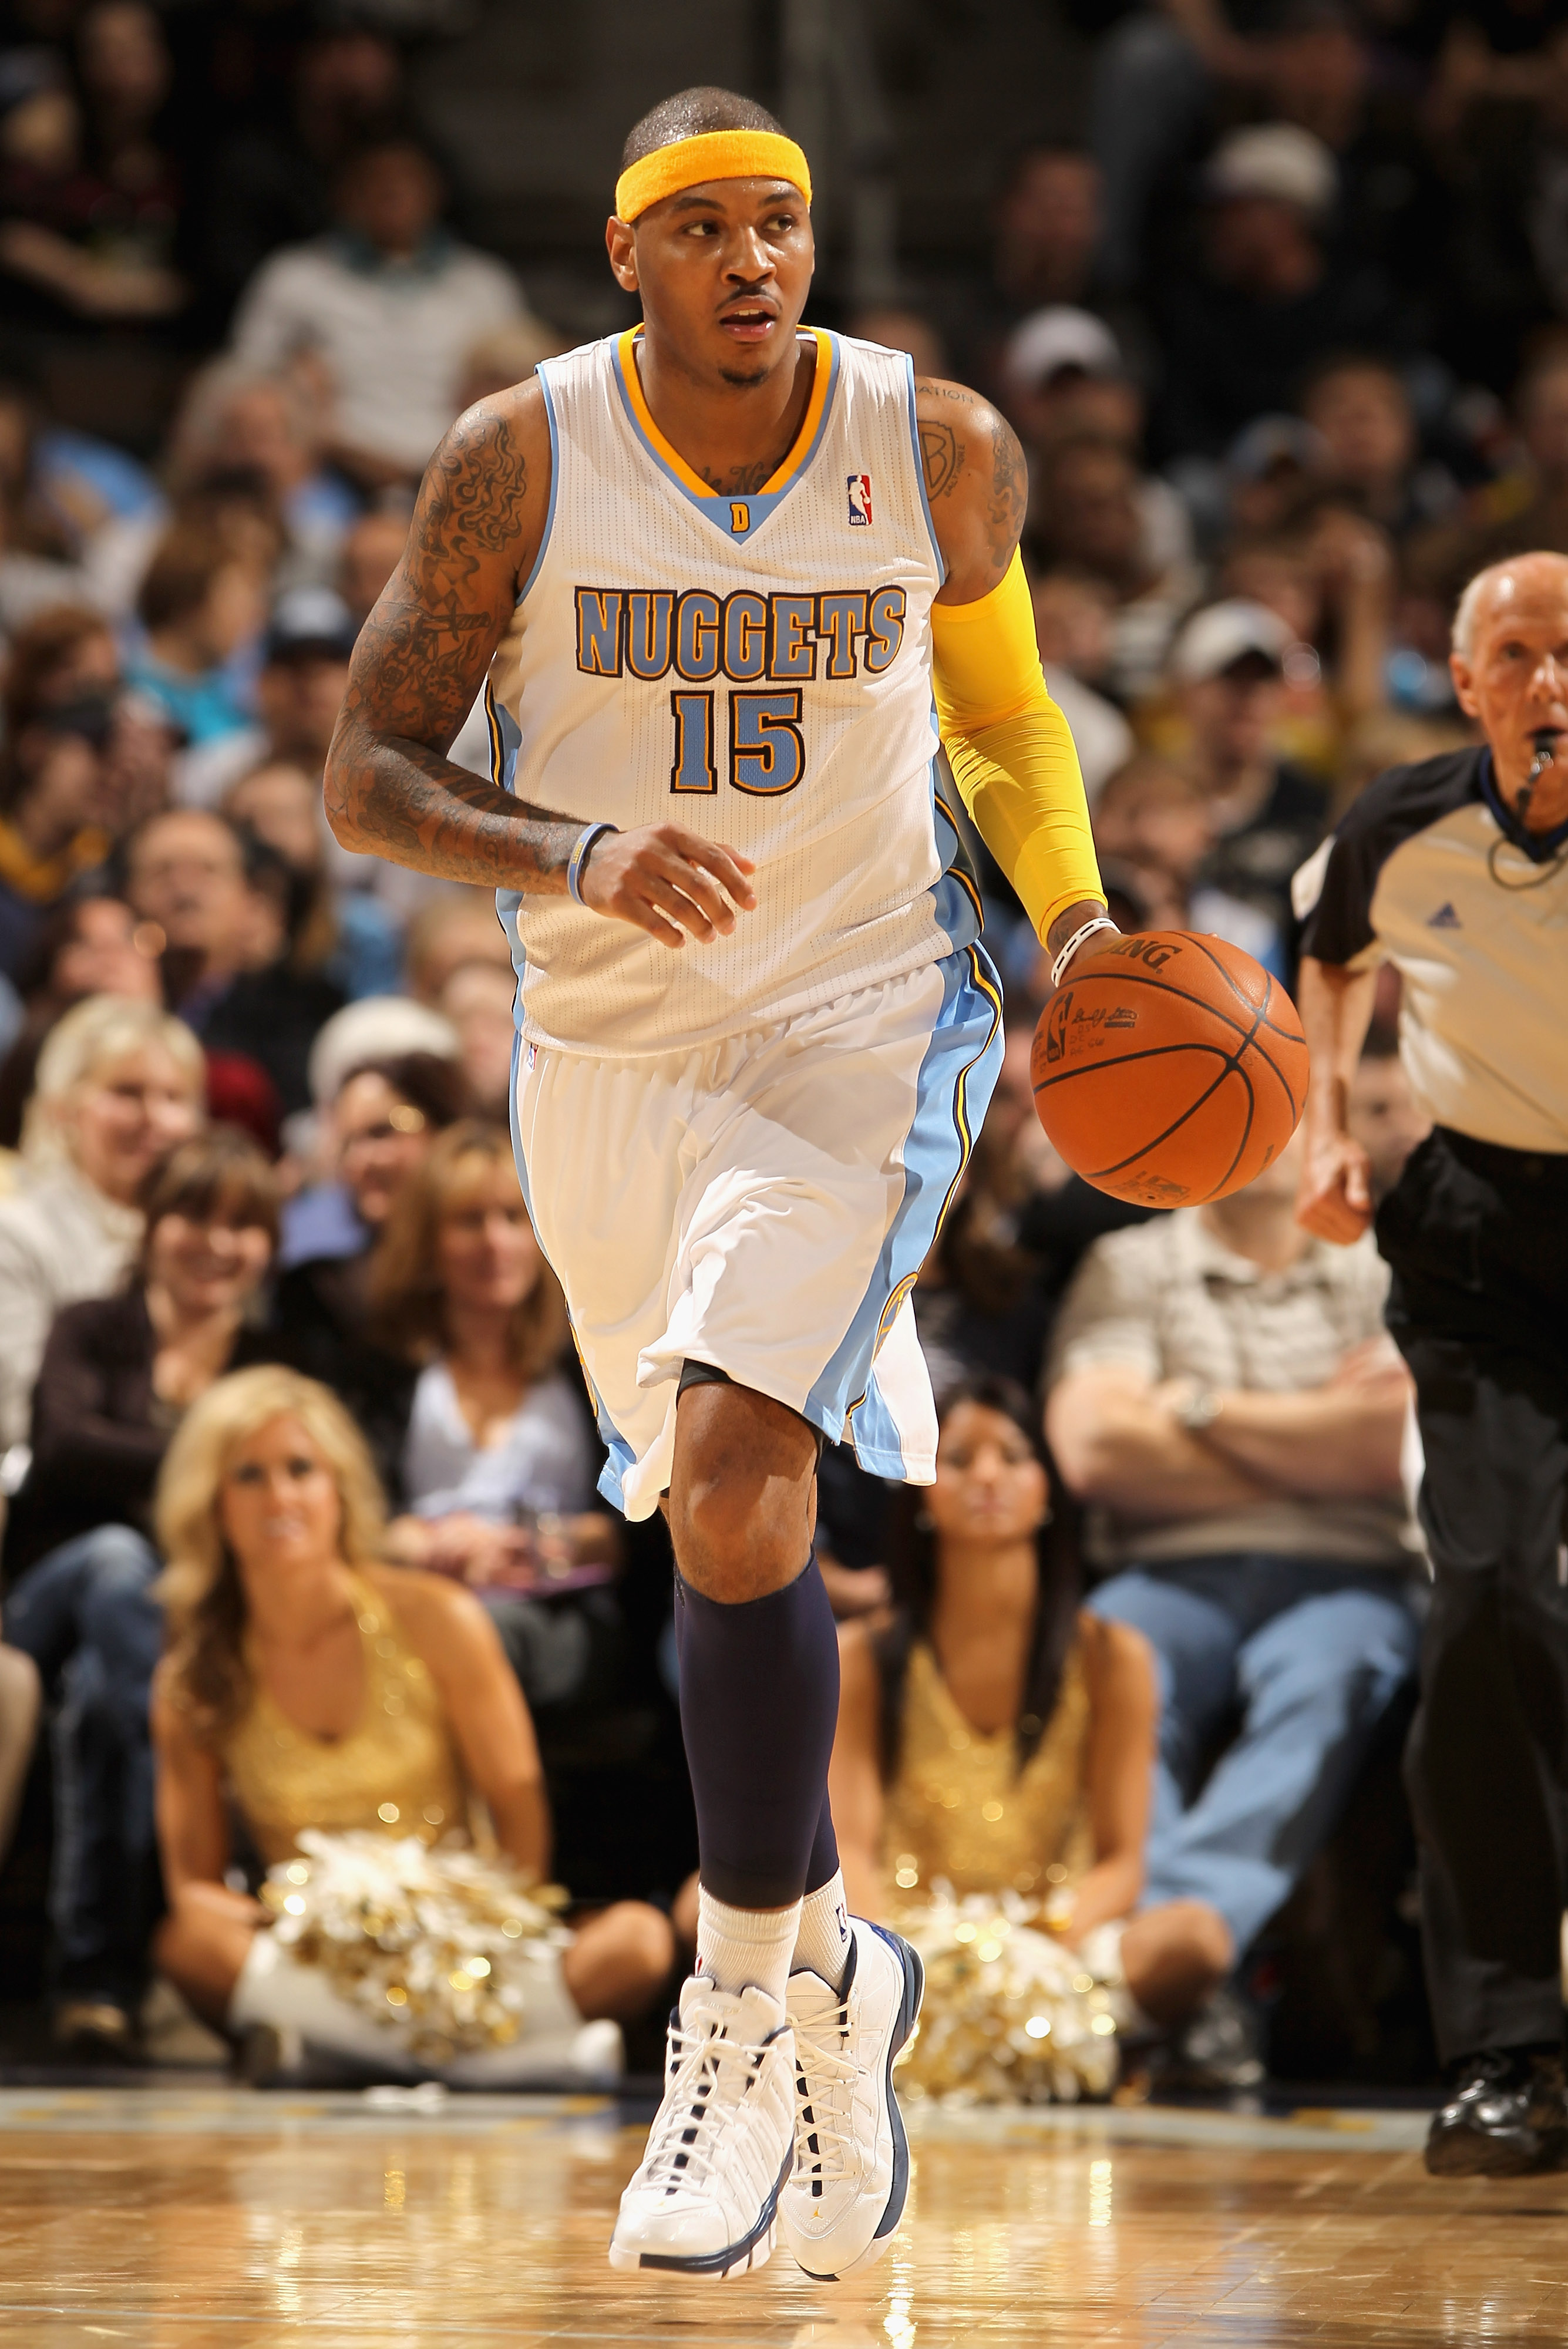 DENVER, CO - JANUARY 13:  Carmelo Anthony #15 of the Denver Nuggets dribbles the ball upcourt against the Miami Heat at the Pepsi Center on January 13, 2011 in Denver, Colorado. The Nuggets defeated the Heat 130-102. NOTE TO USER: User expressly acknowled